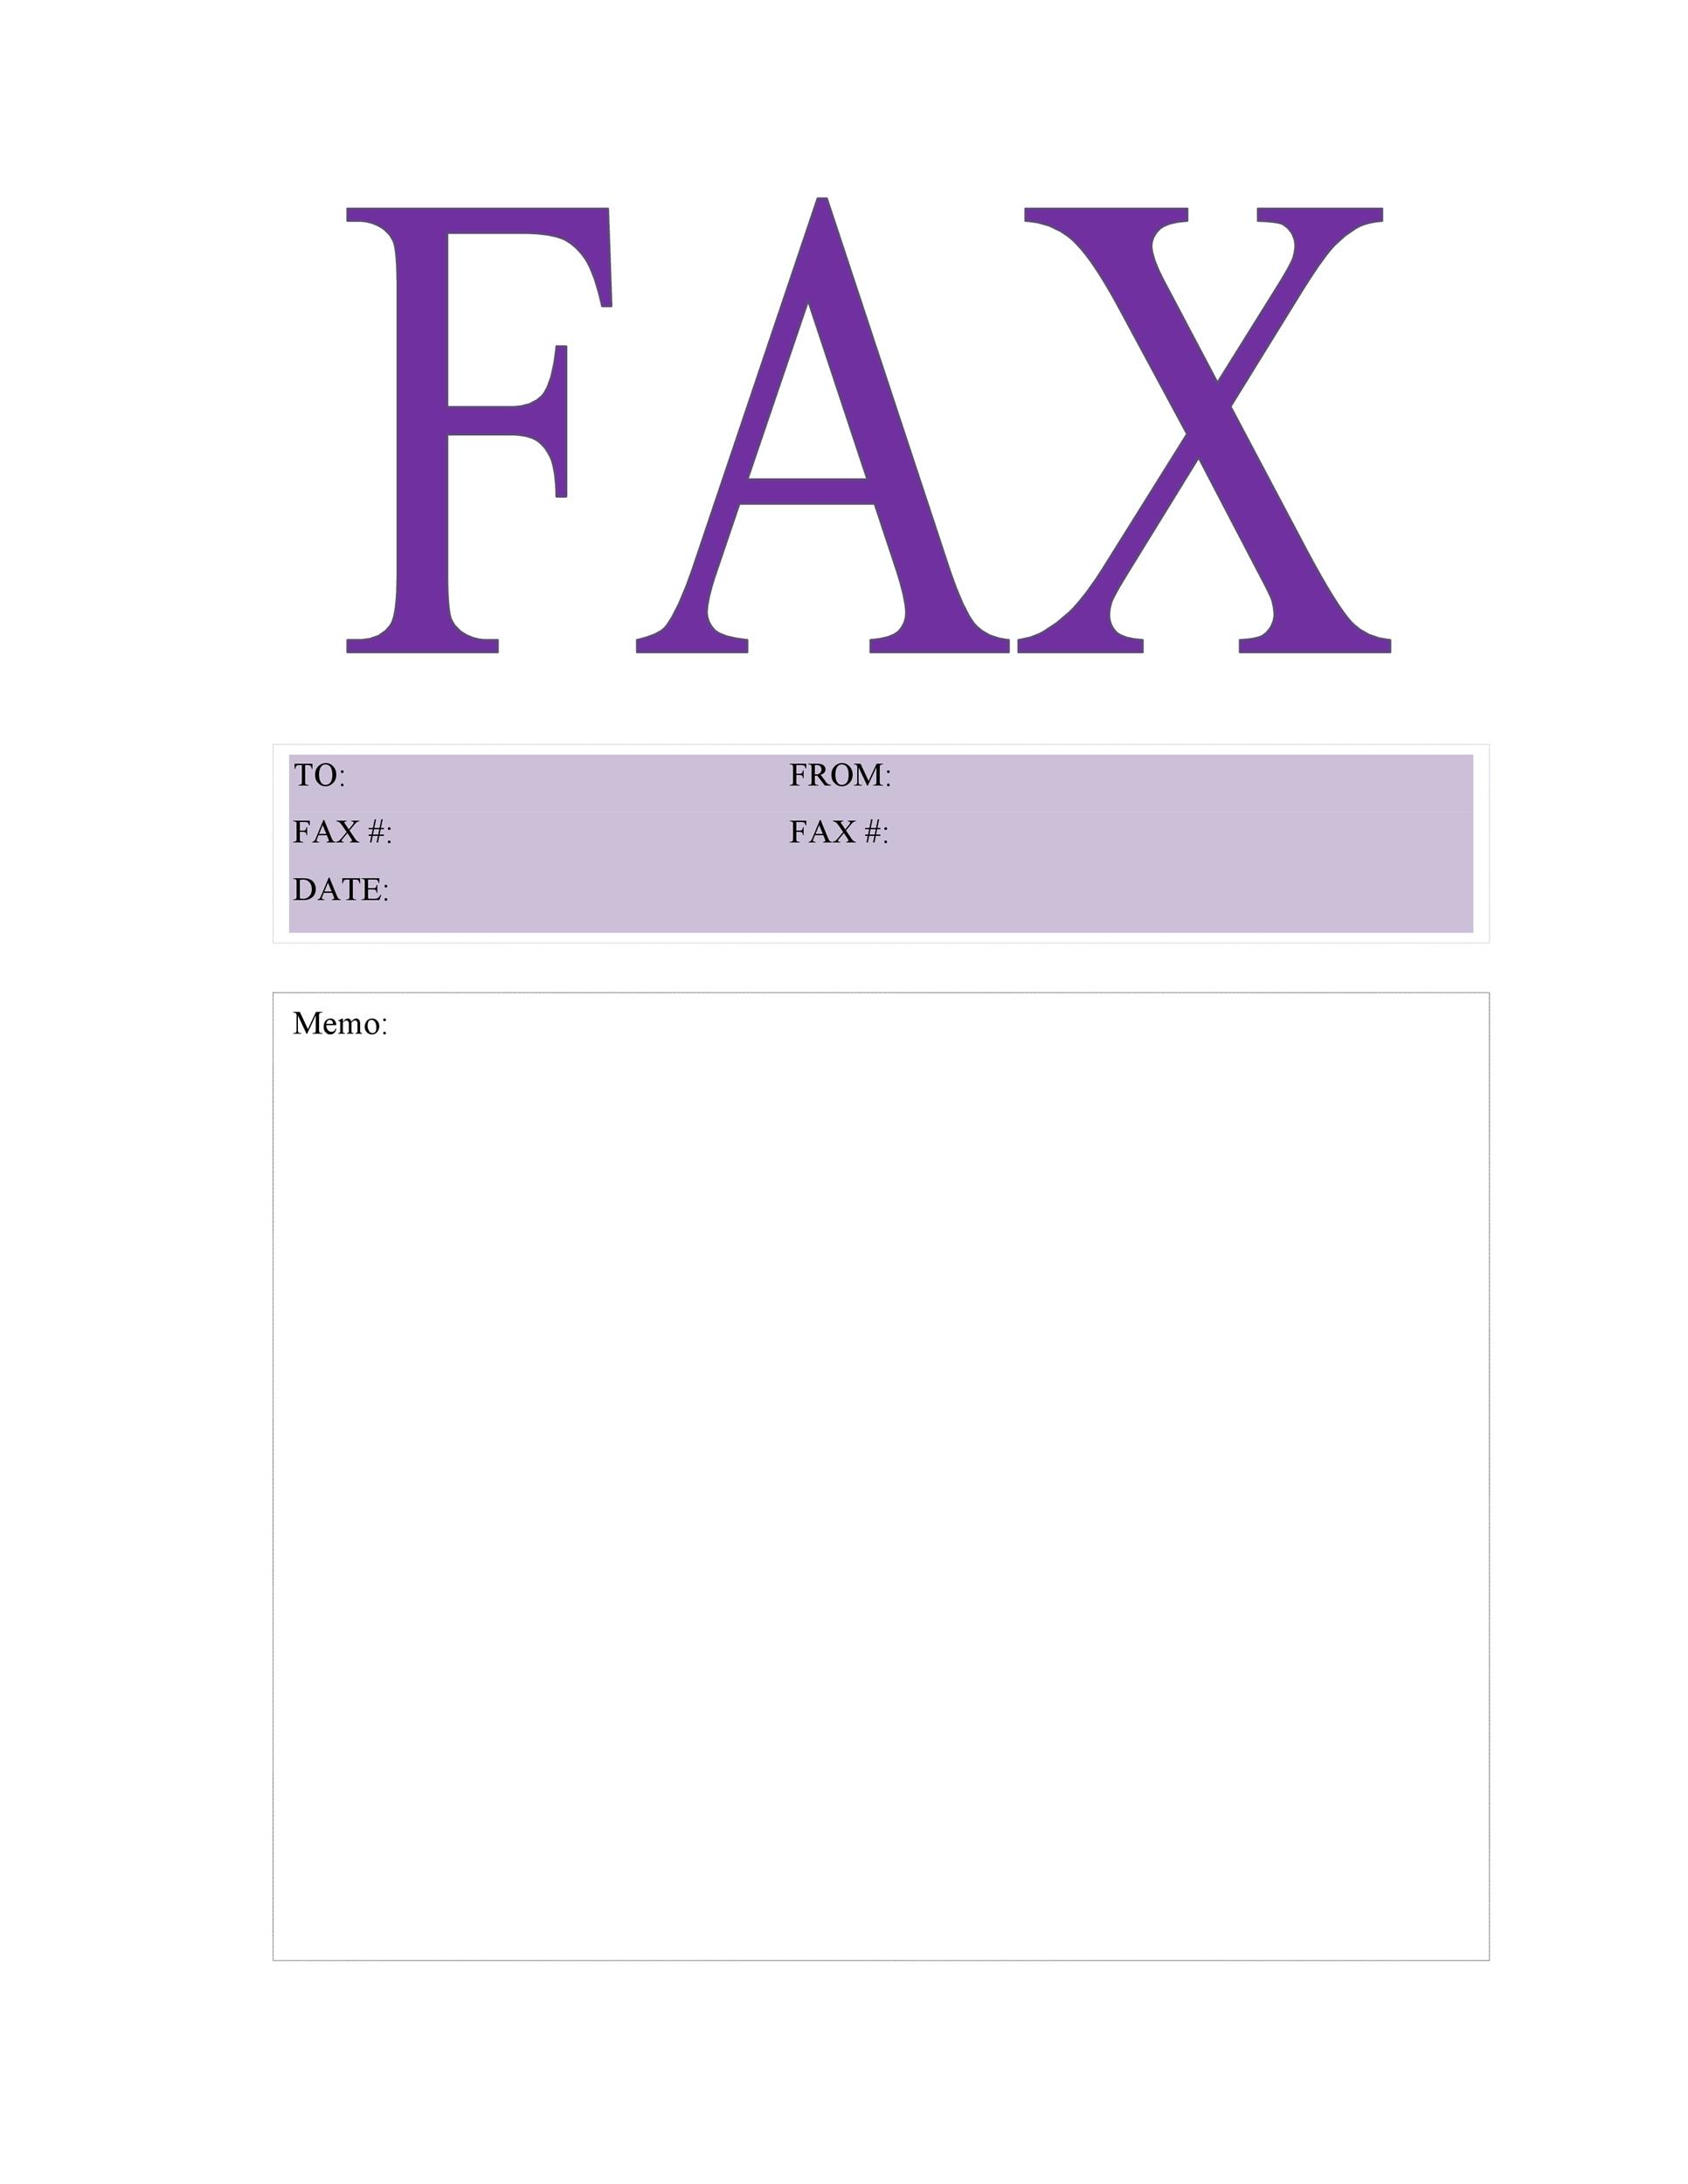 Sample Fax Cover Letter Template | 40 Printable Fax Cover Sheet Templates ᐅ Template Lab